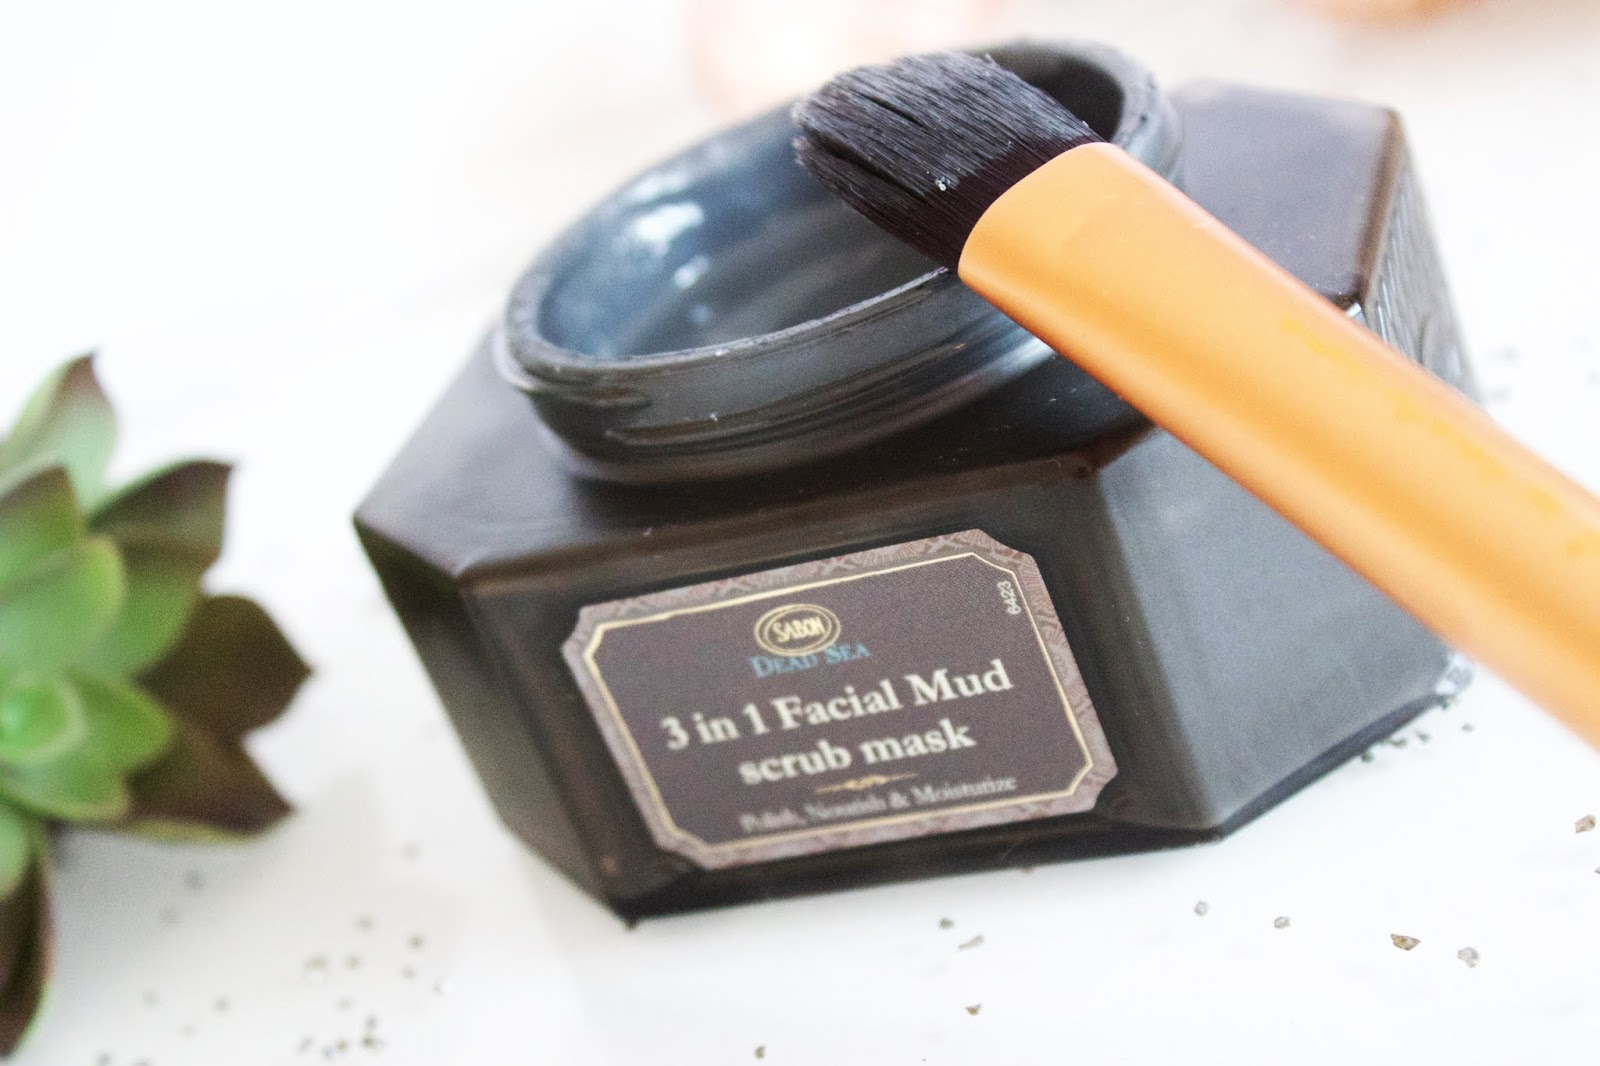 sabon-3-in-1-facial-mud-scrub-mask-review